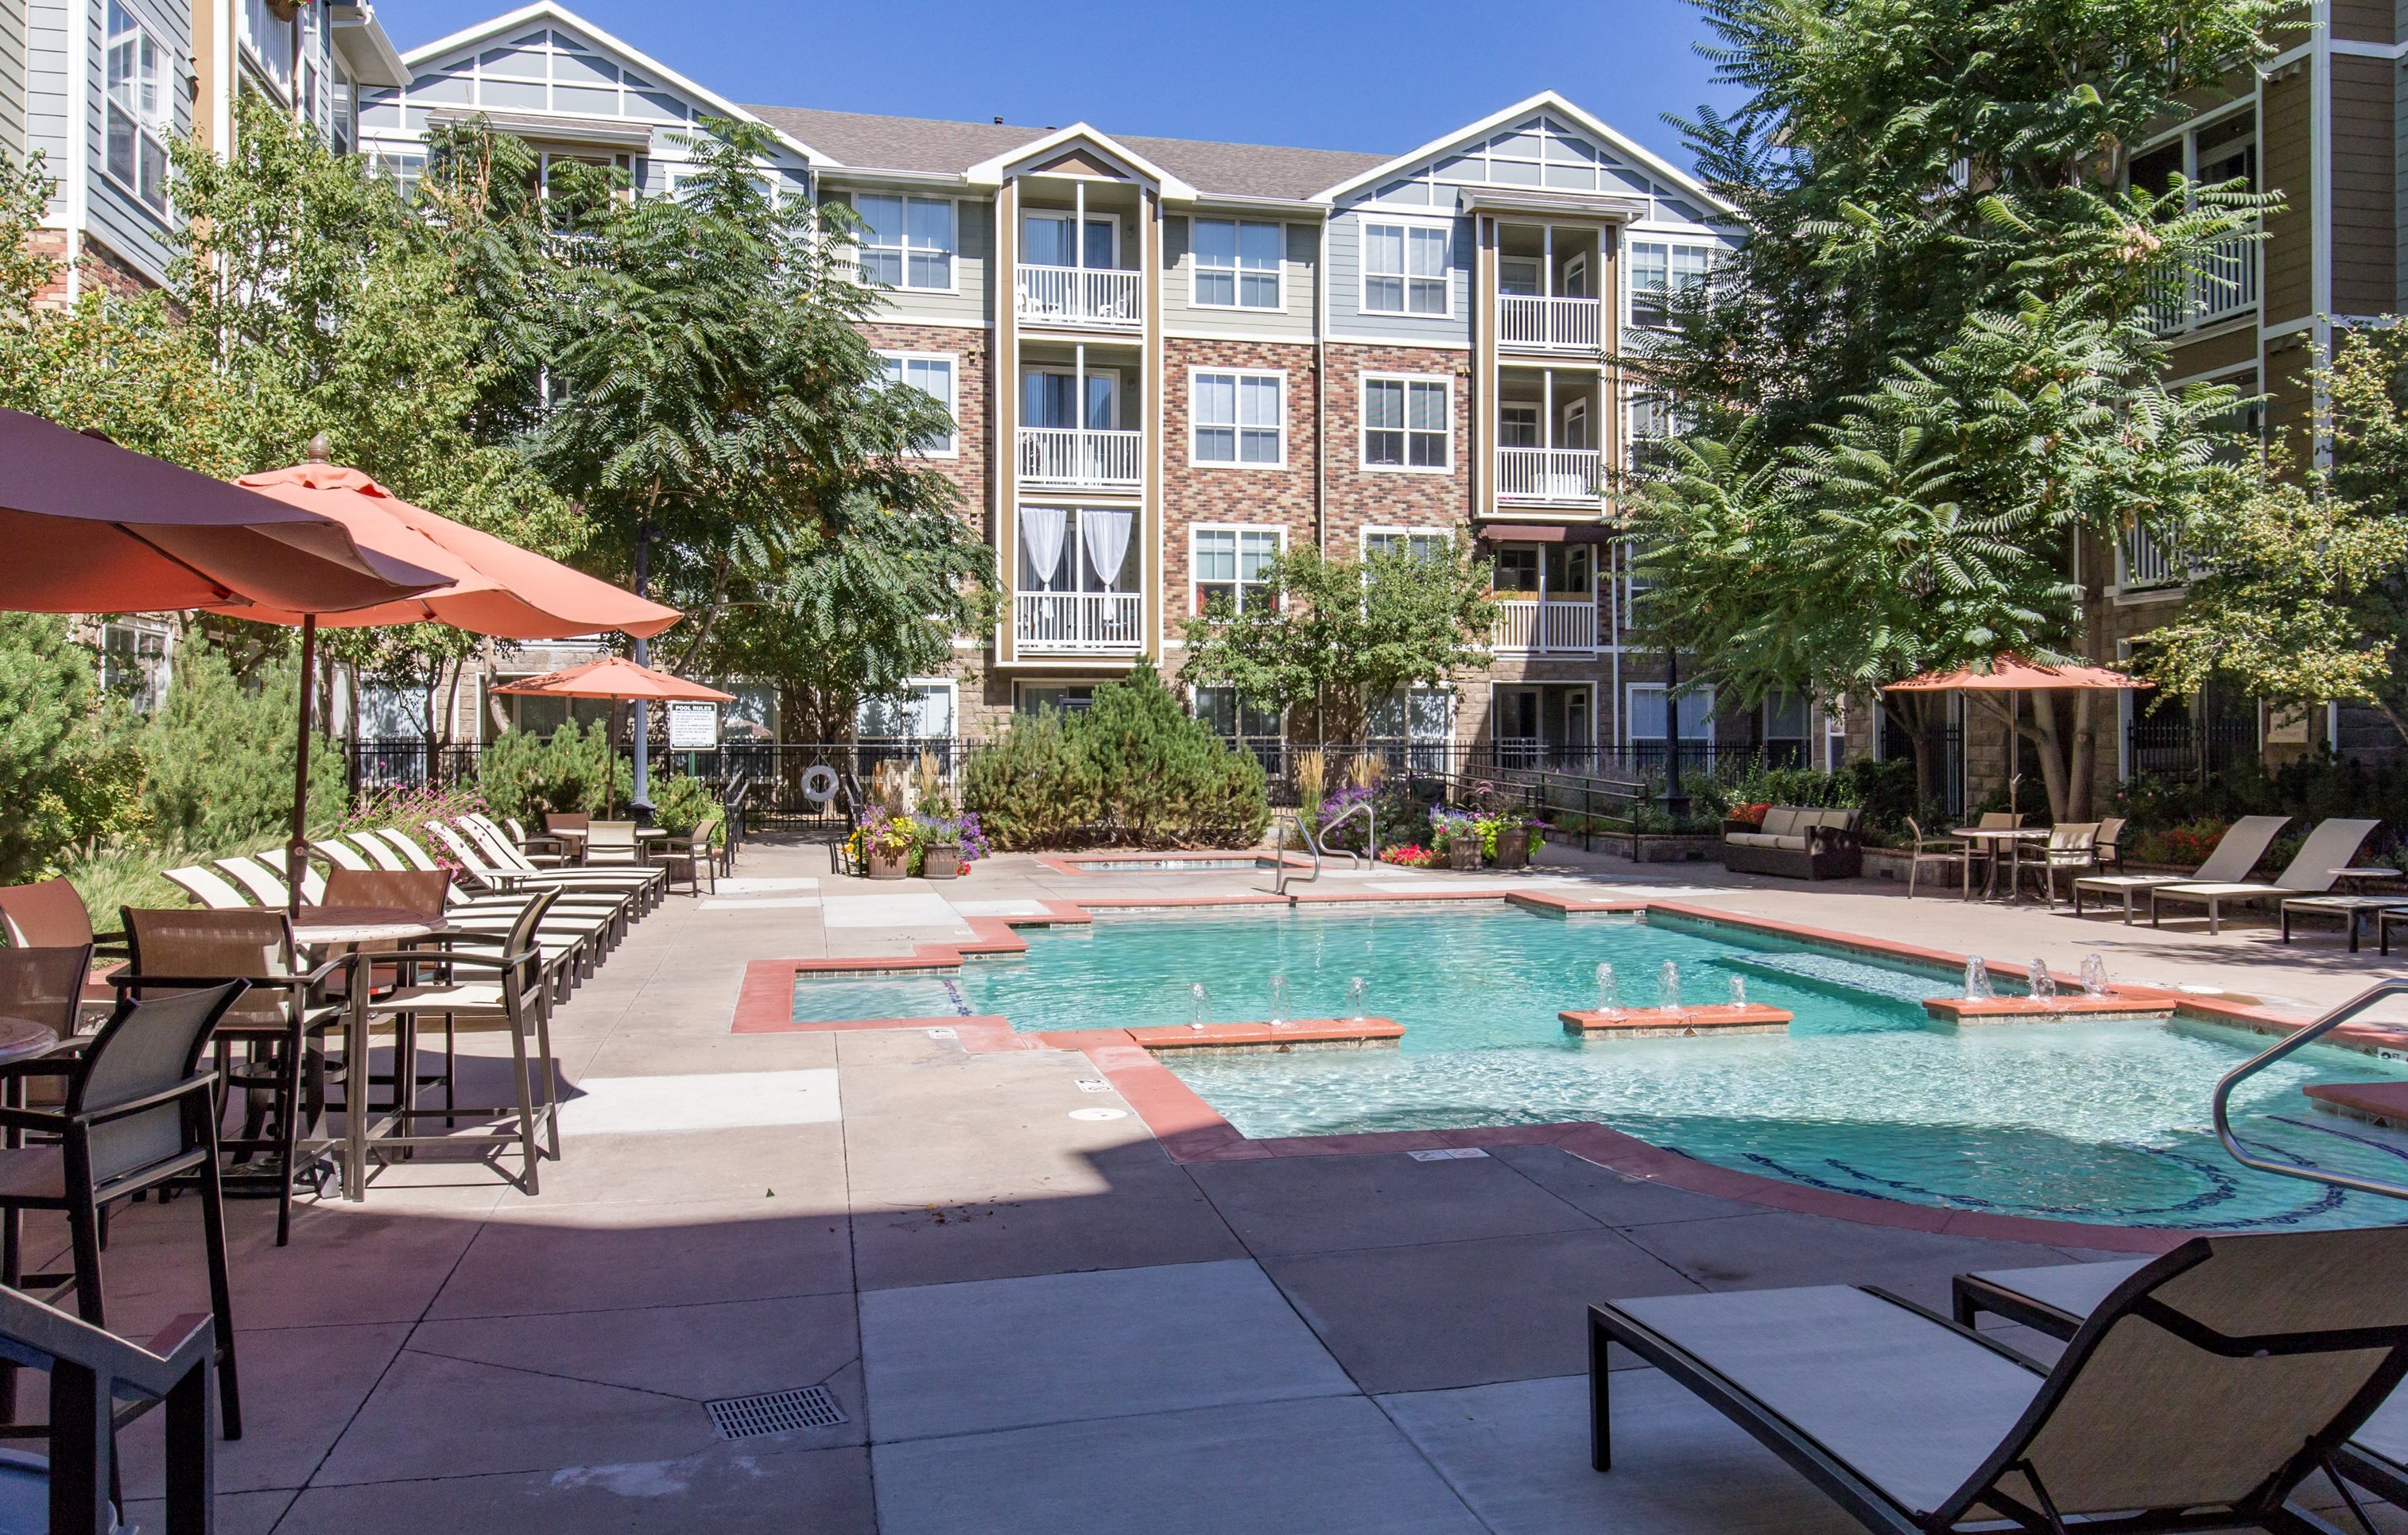 Colorado Pointe Apartments Pool With Loungers